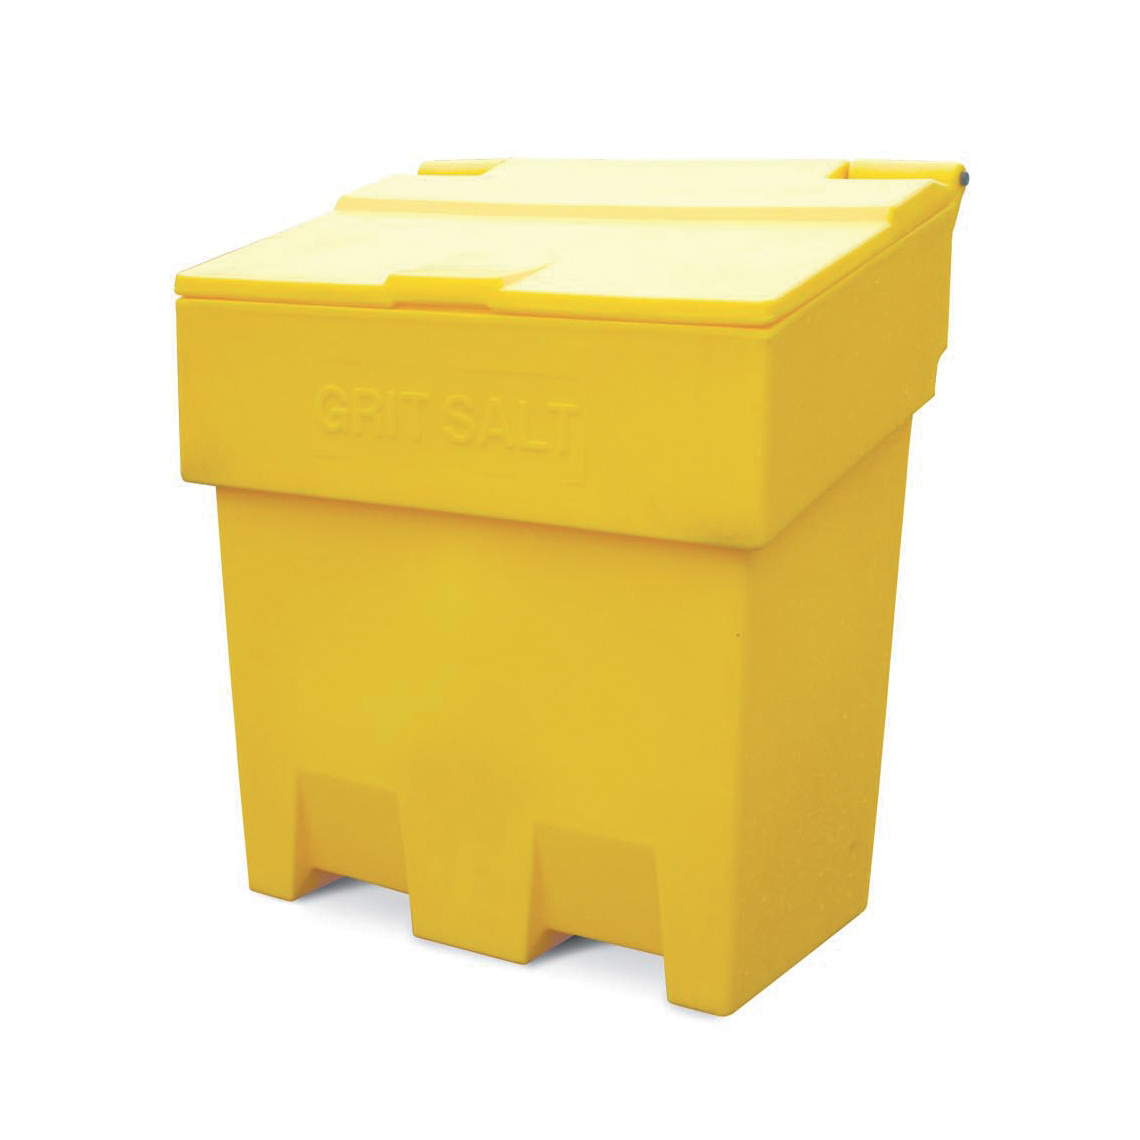 Image for Bentley Grit and Salt Bin Polyethylene Capacity 240kg Weight 14kg Ref SPC/GRIT200